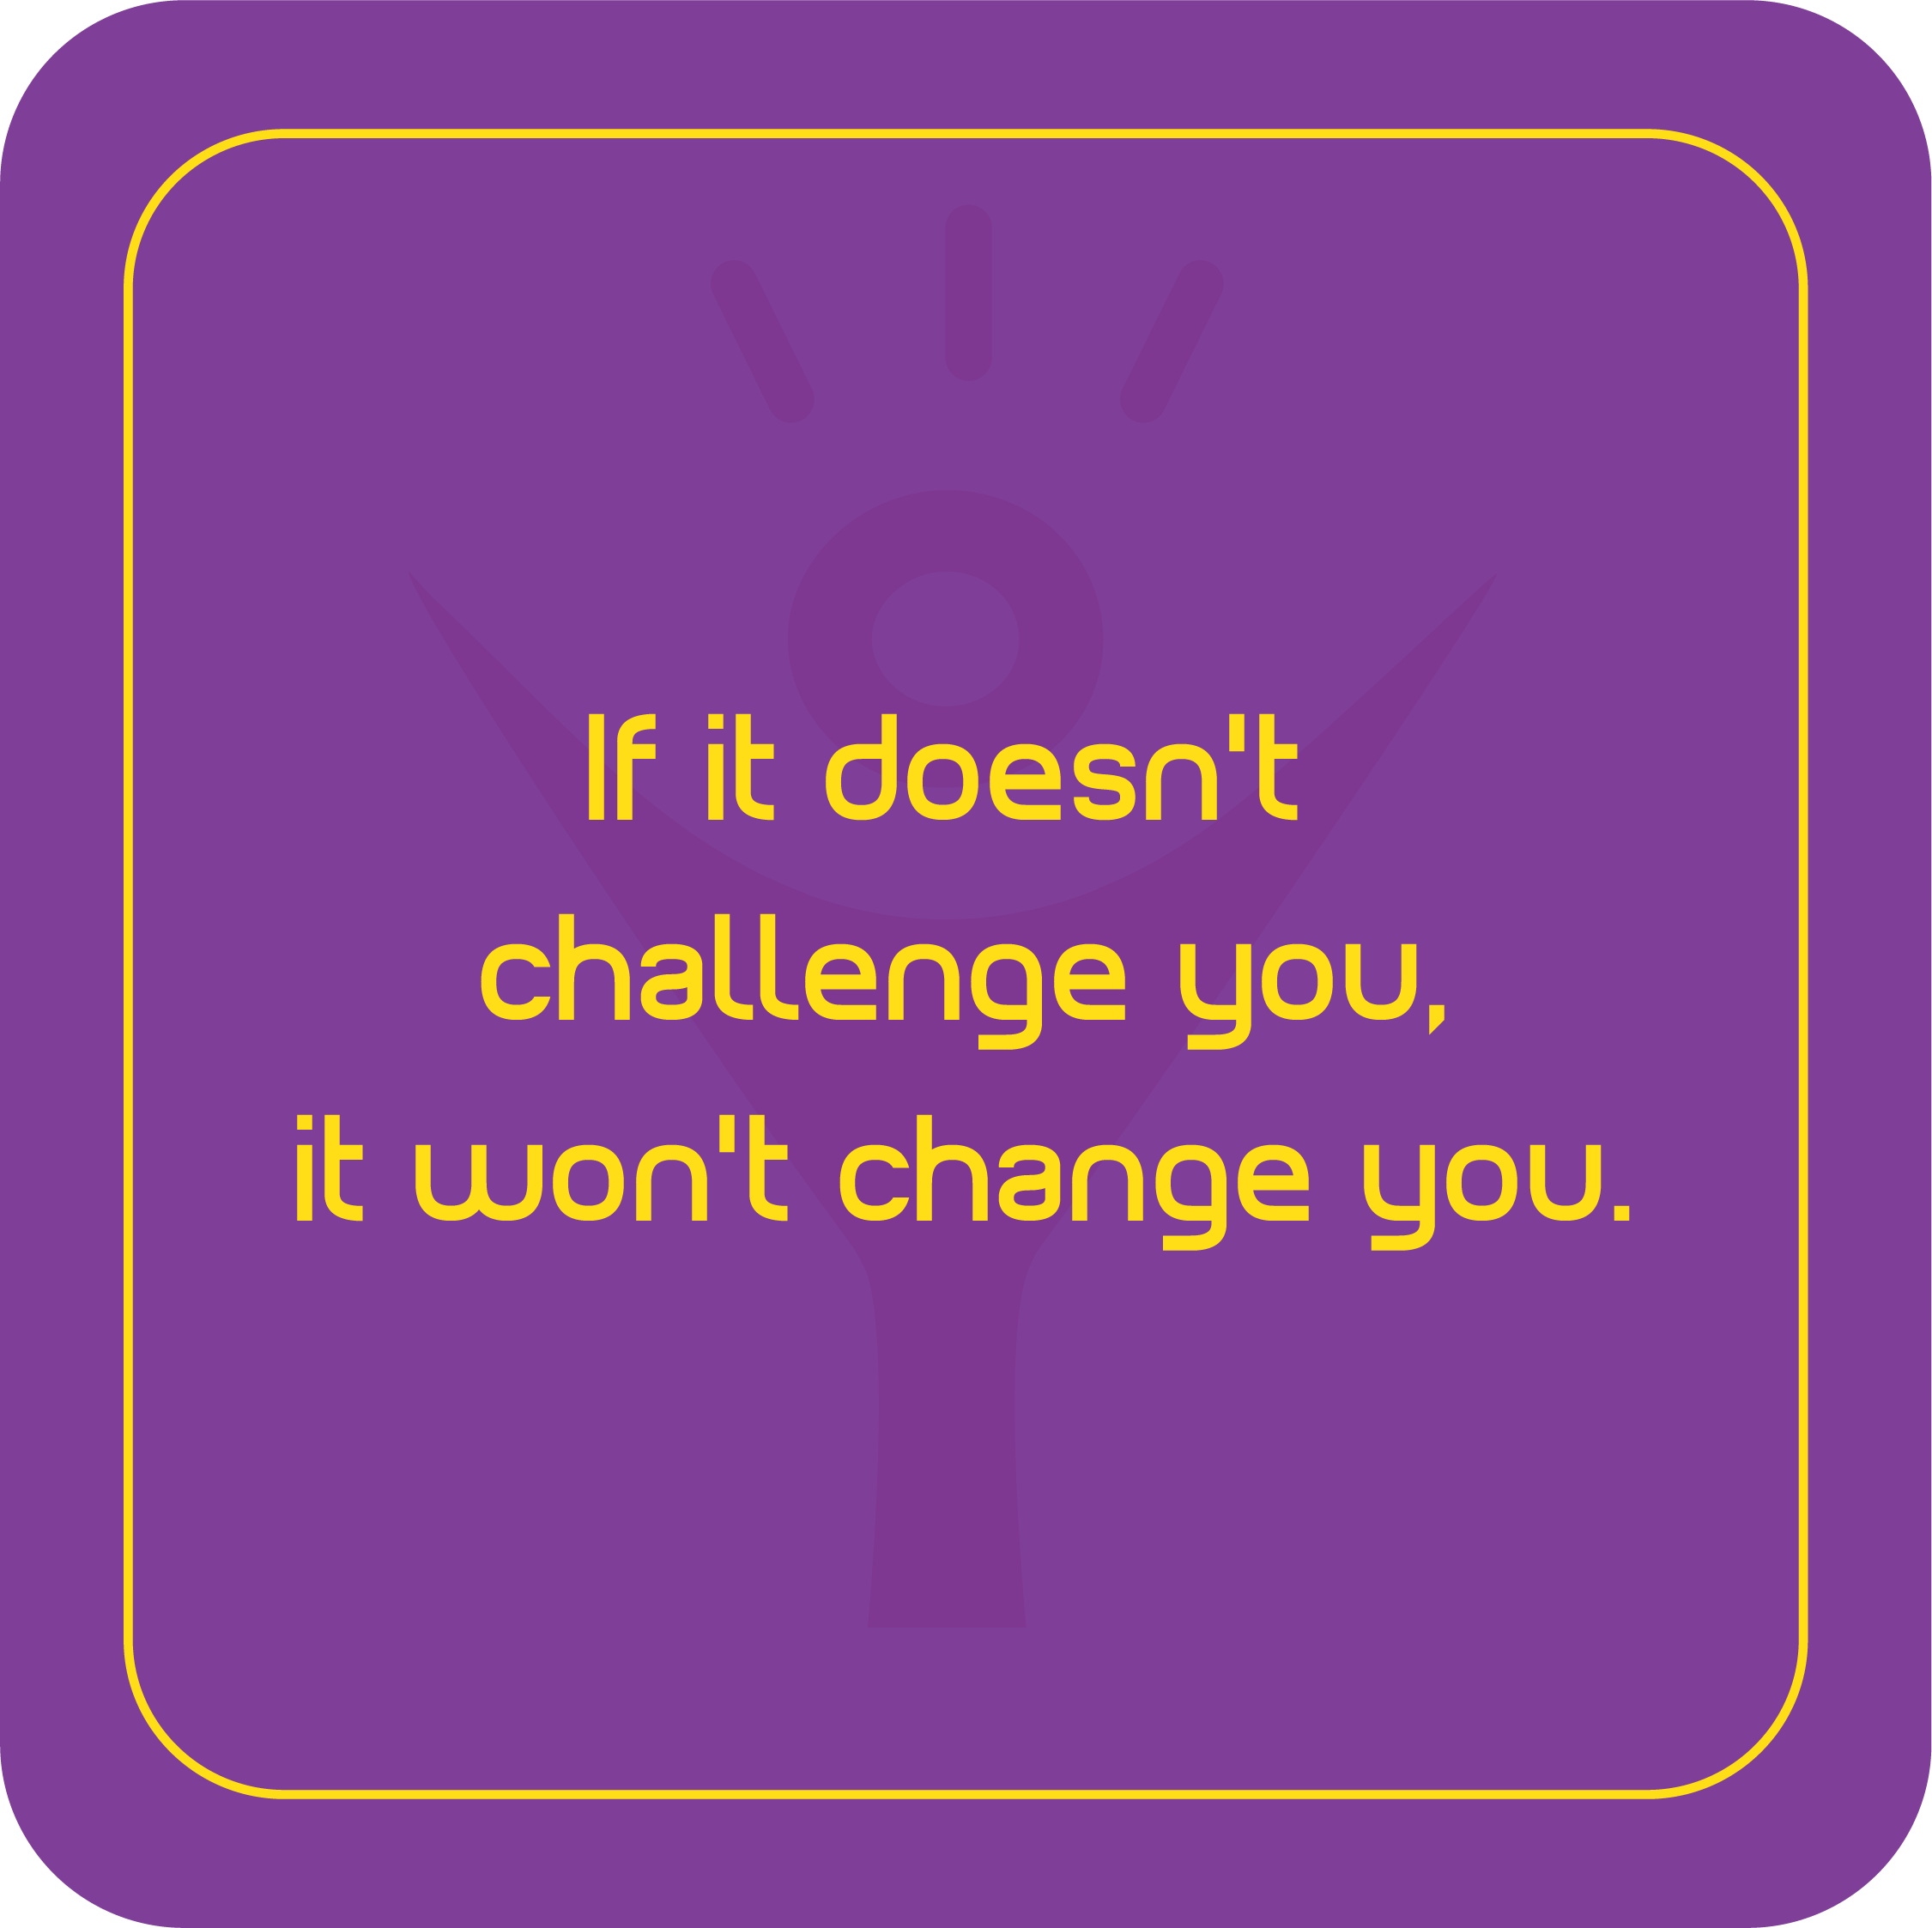 WitdoesnT challenge you, it won't change you. https://inspirational.ly